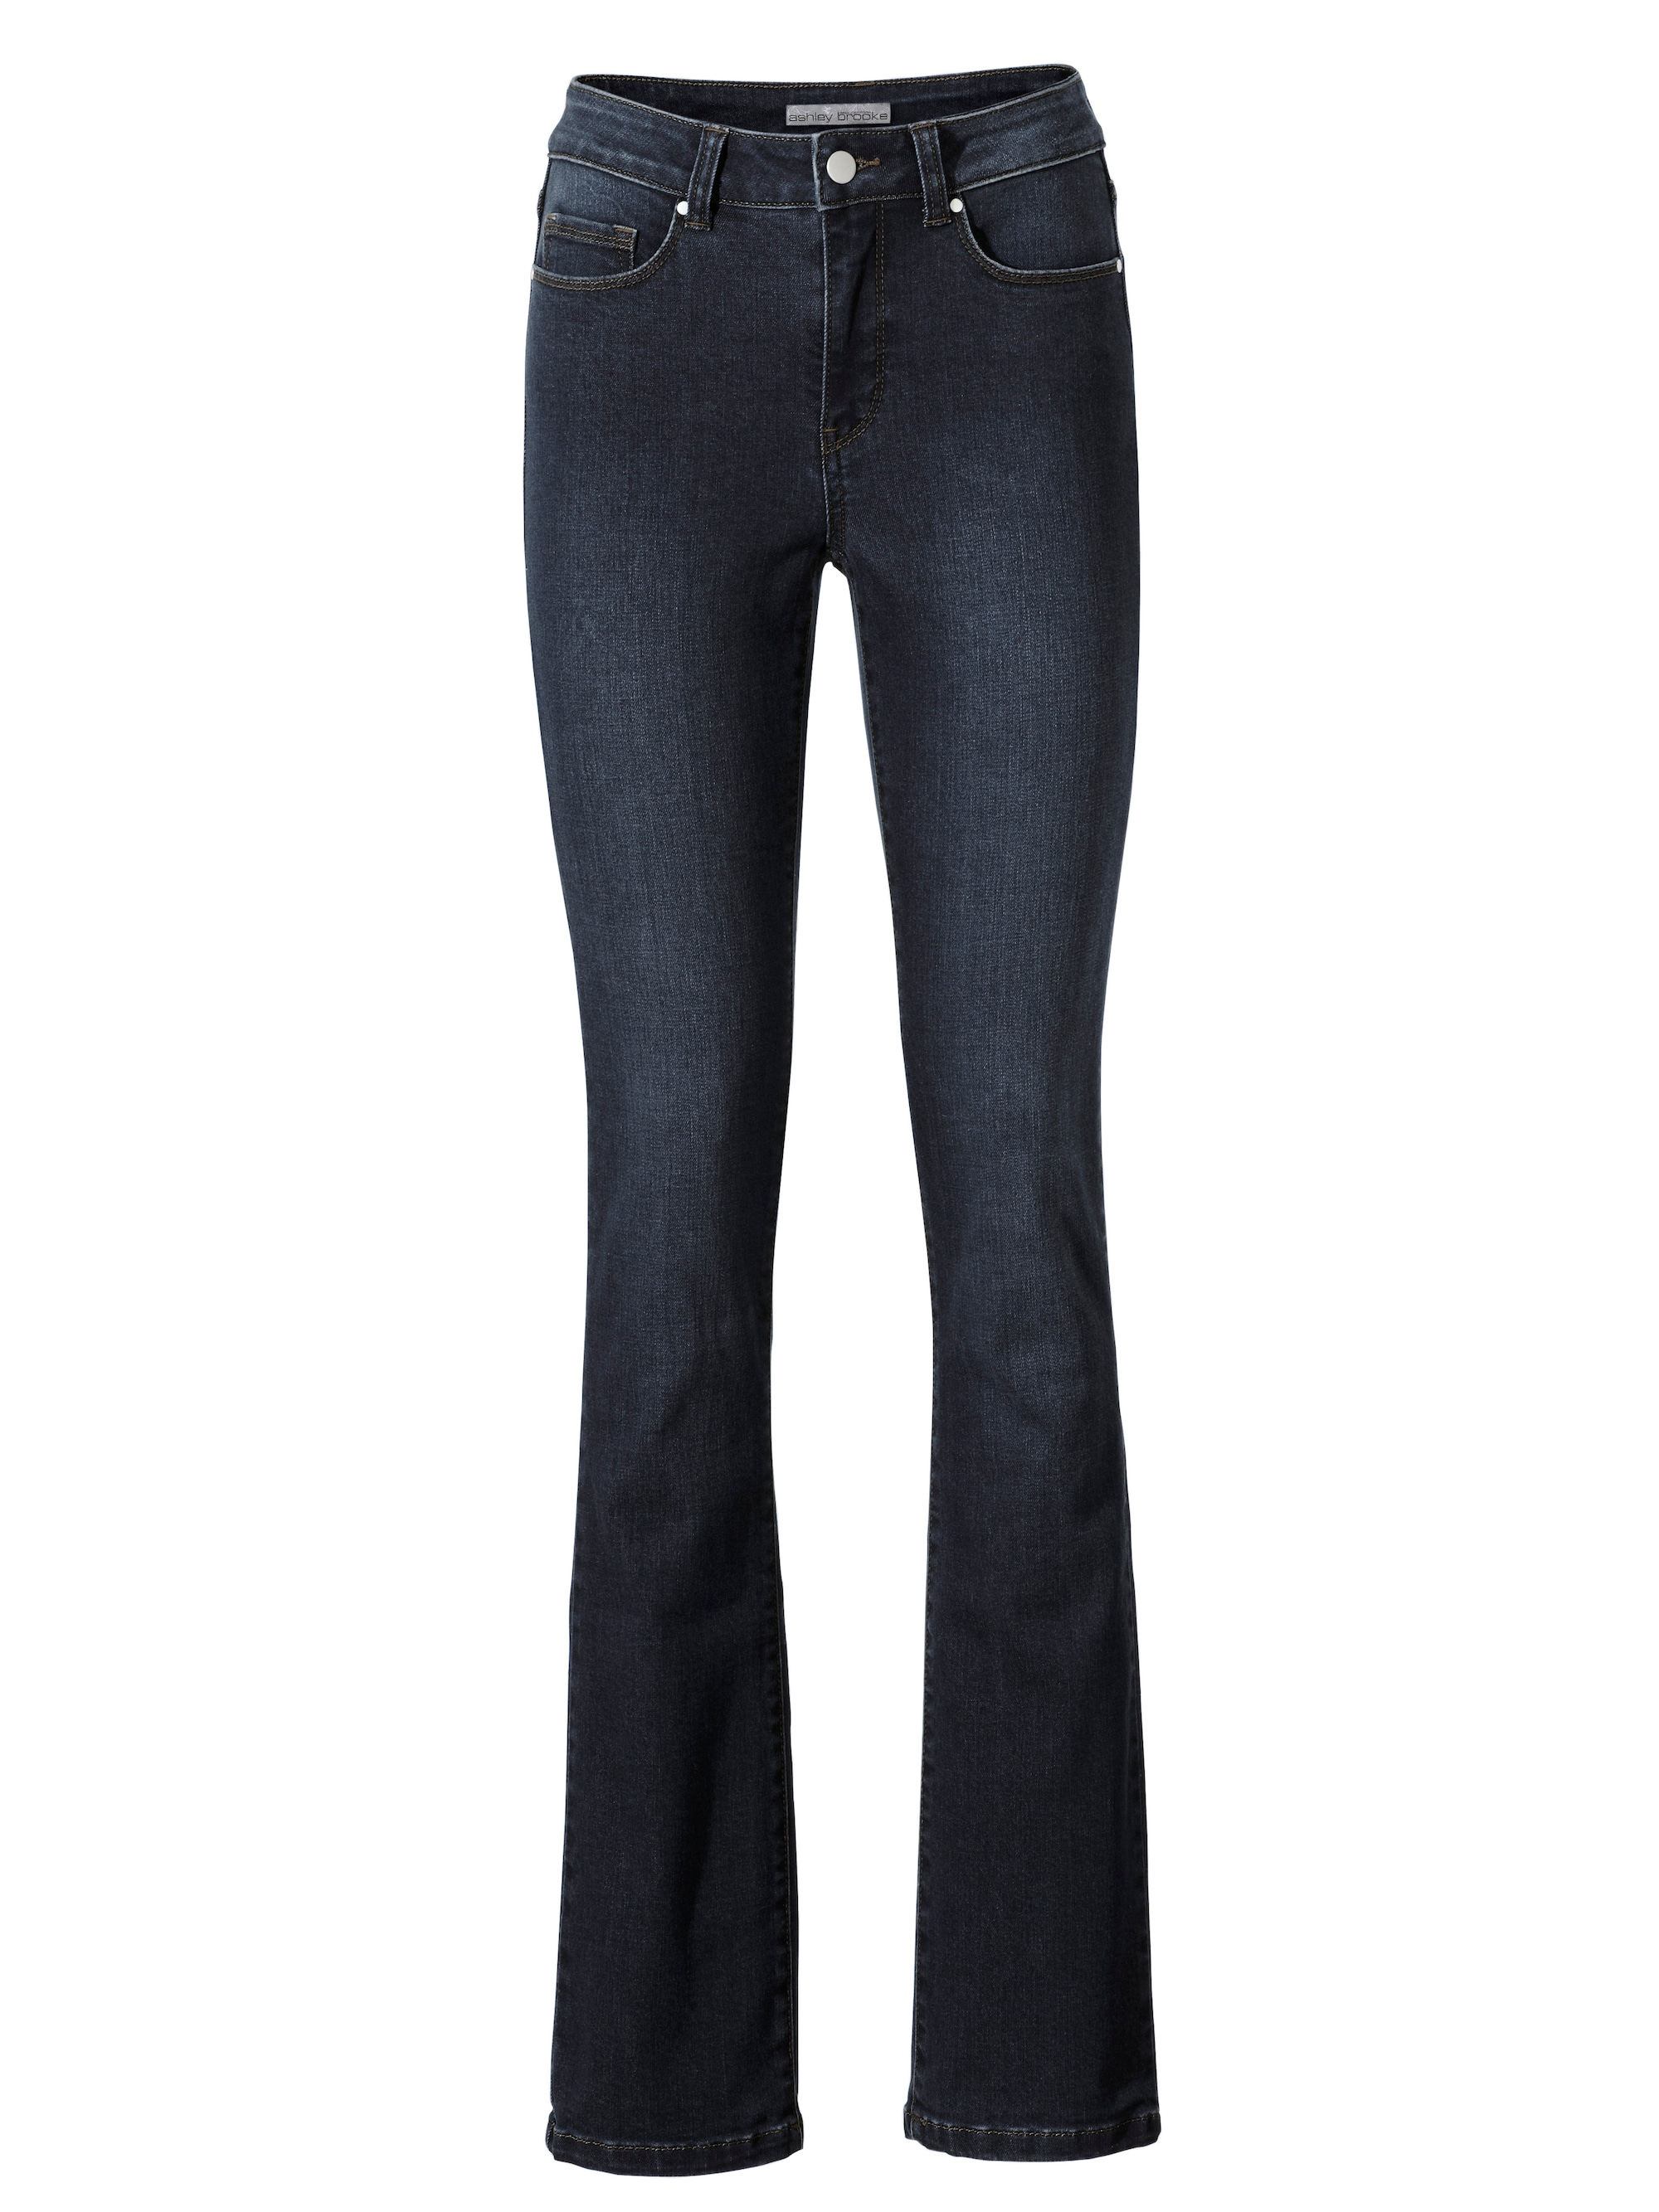 Image of Bodyform-Bootcut-Jeans mit Coolmax-Funktion